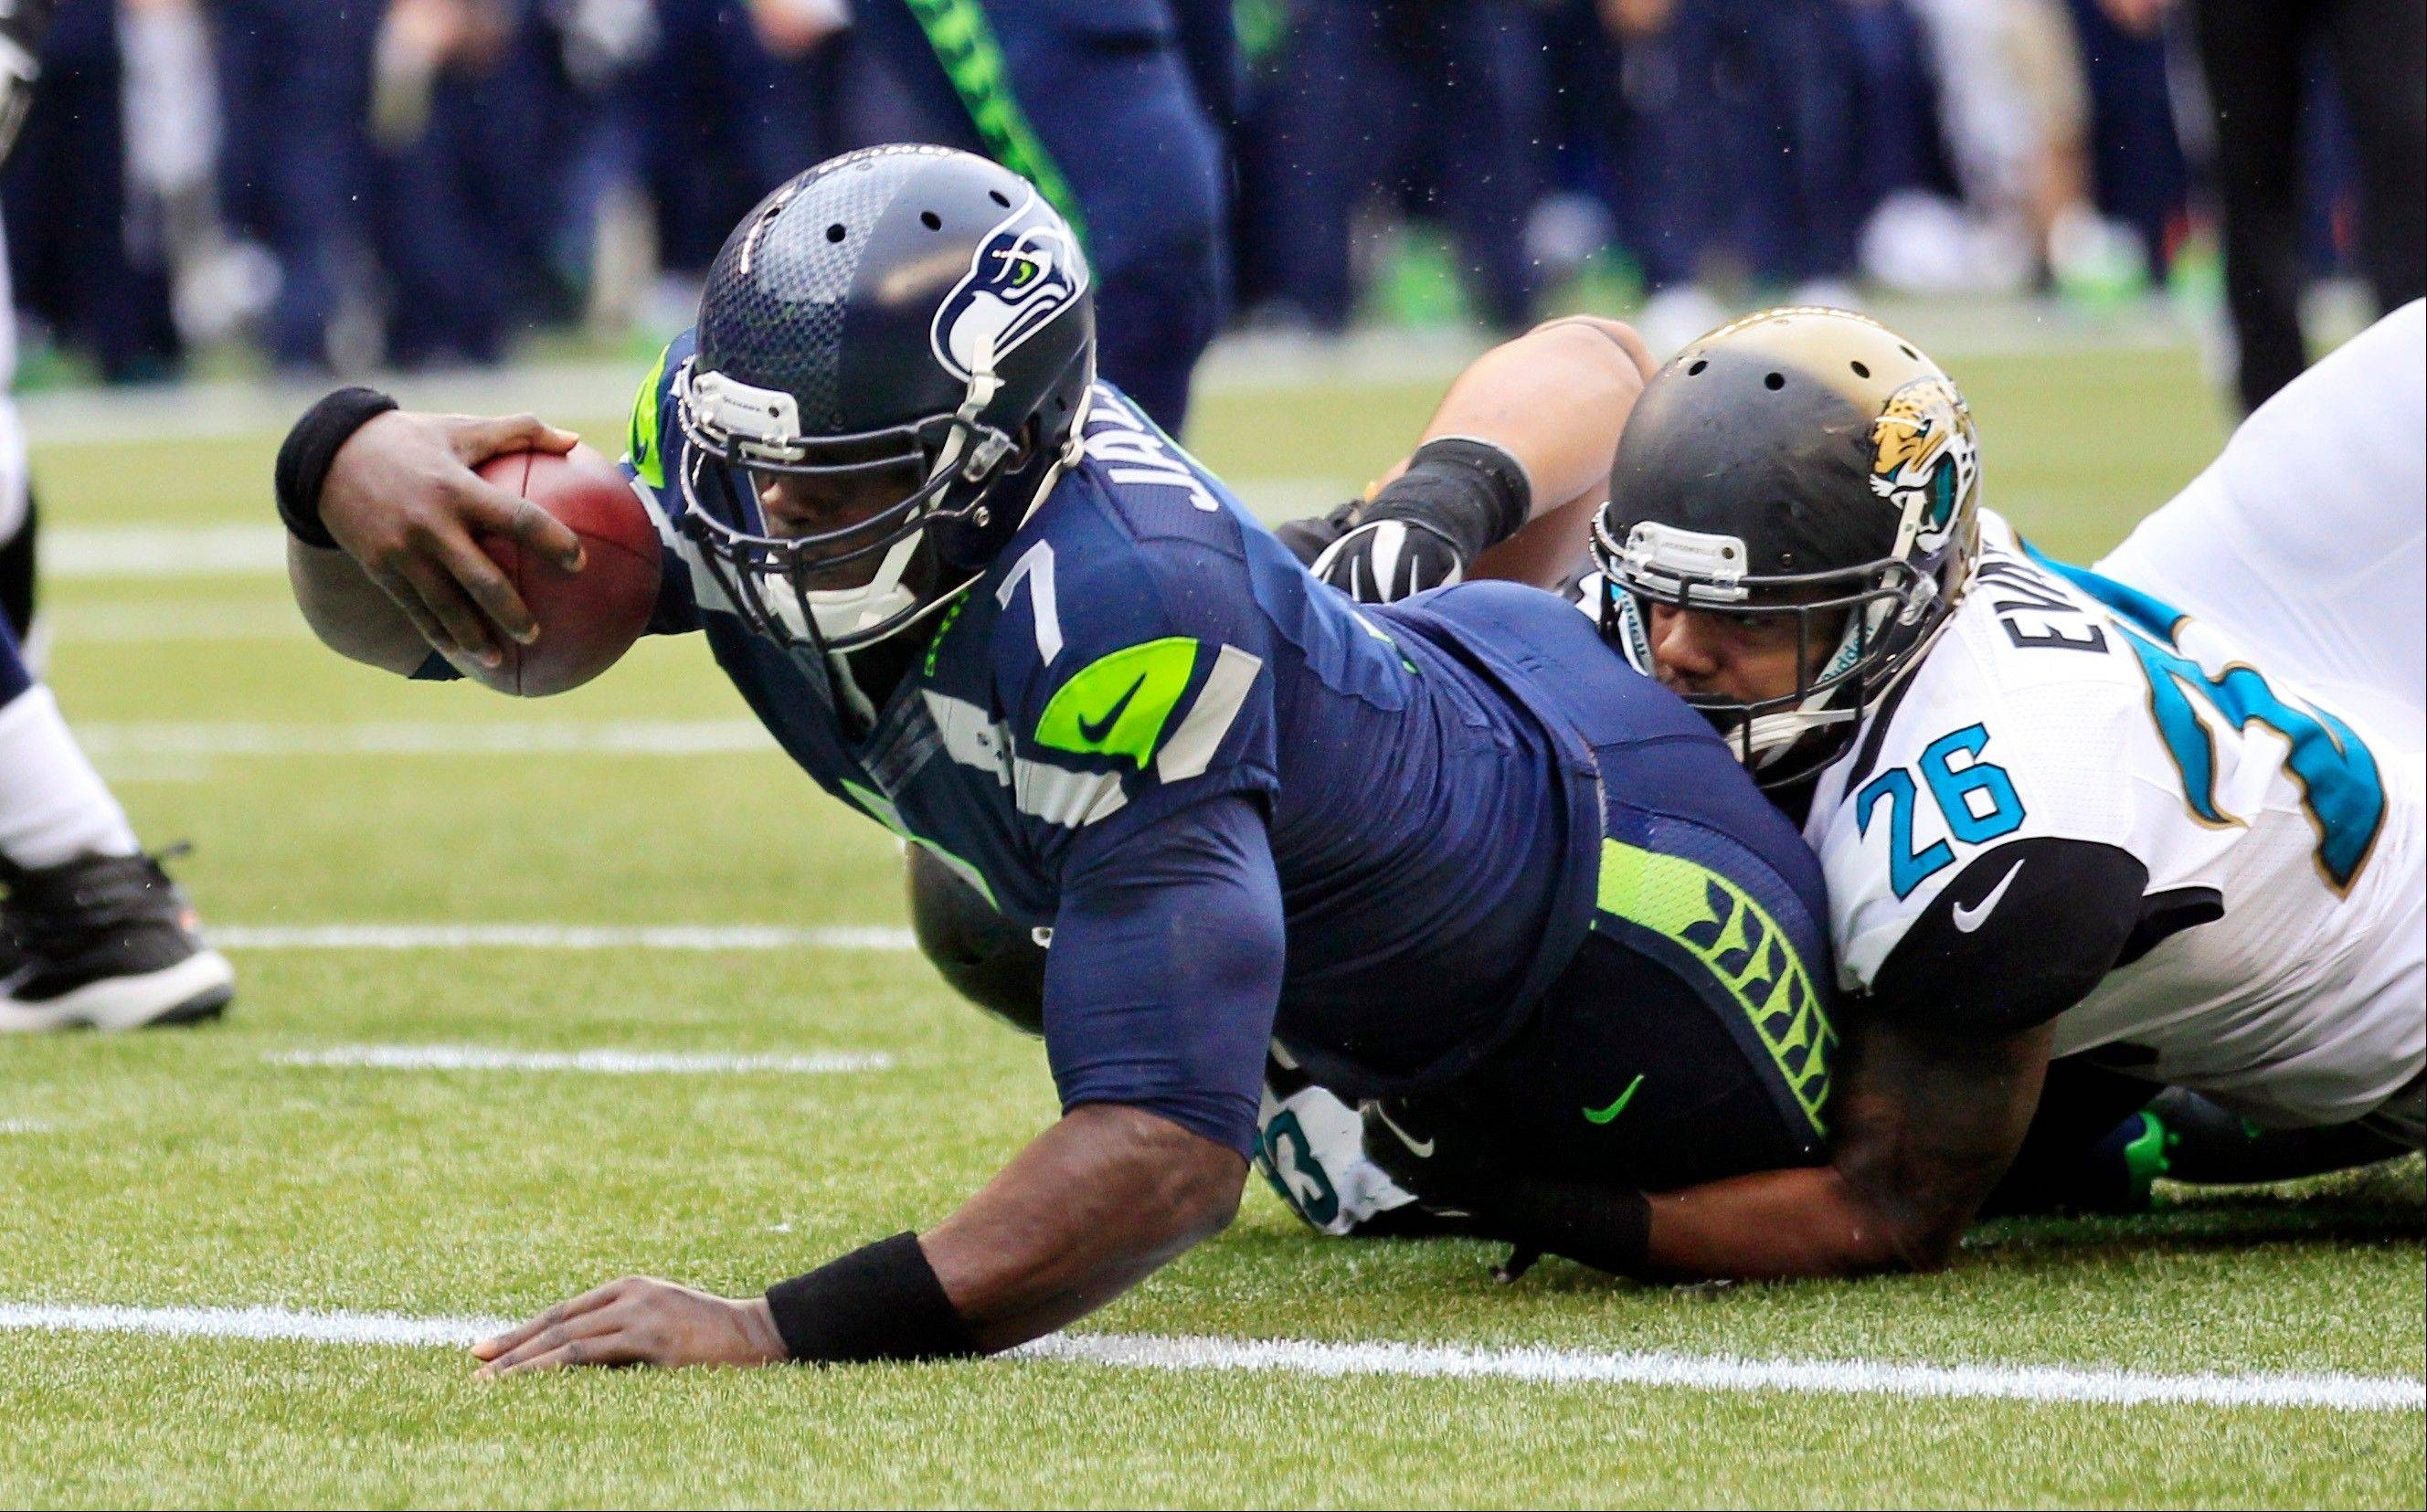 Seattle Seahawks backup quarterback Tarvaris Jackson (7) scores on a keeper as Jacksonville Jaguars' Josh Evans brings him down in the second half of an NFL football game on Sunday, Sept. 22, 2013, in Seattle.